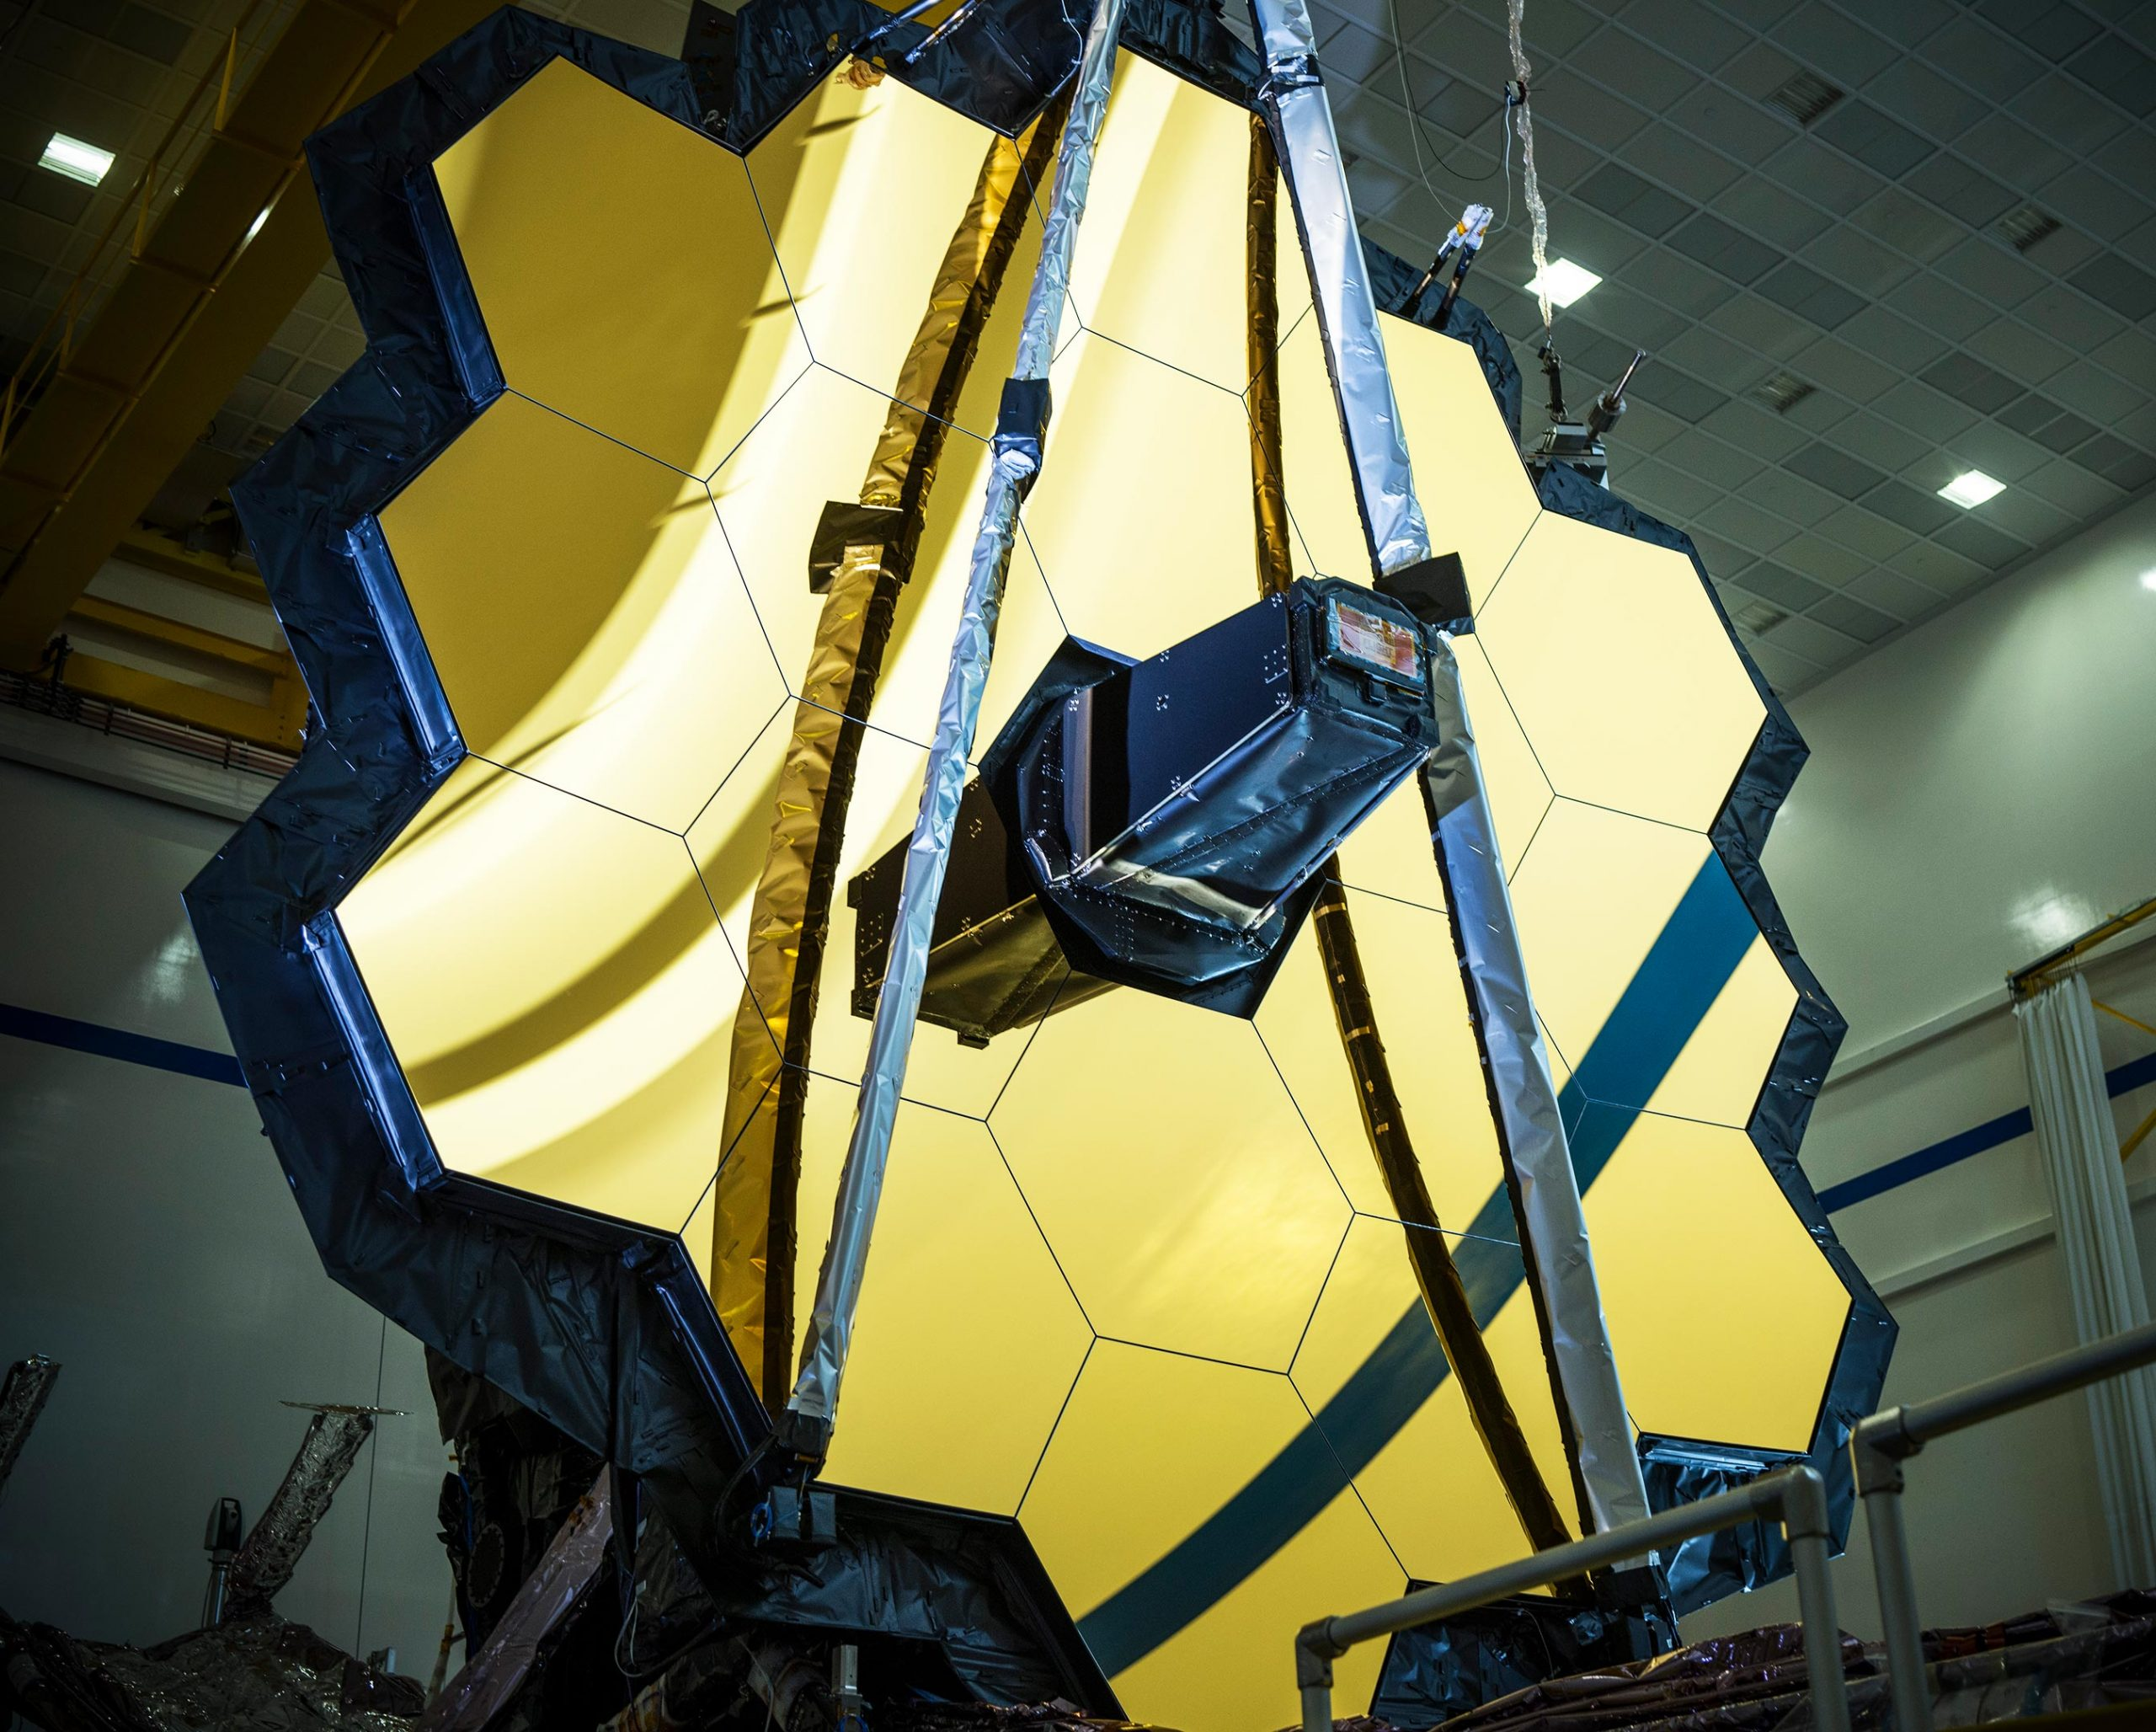 James Webb Space Telescope Primary Mirror Fully Deployed scaled